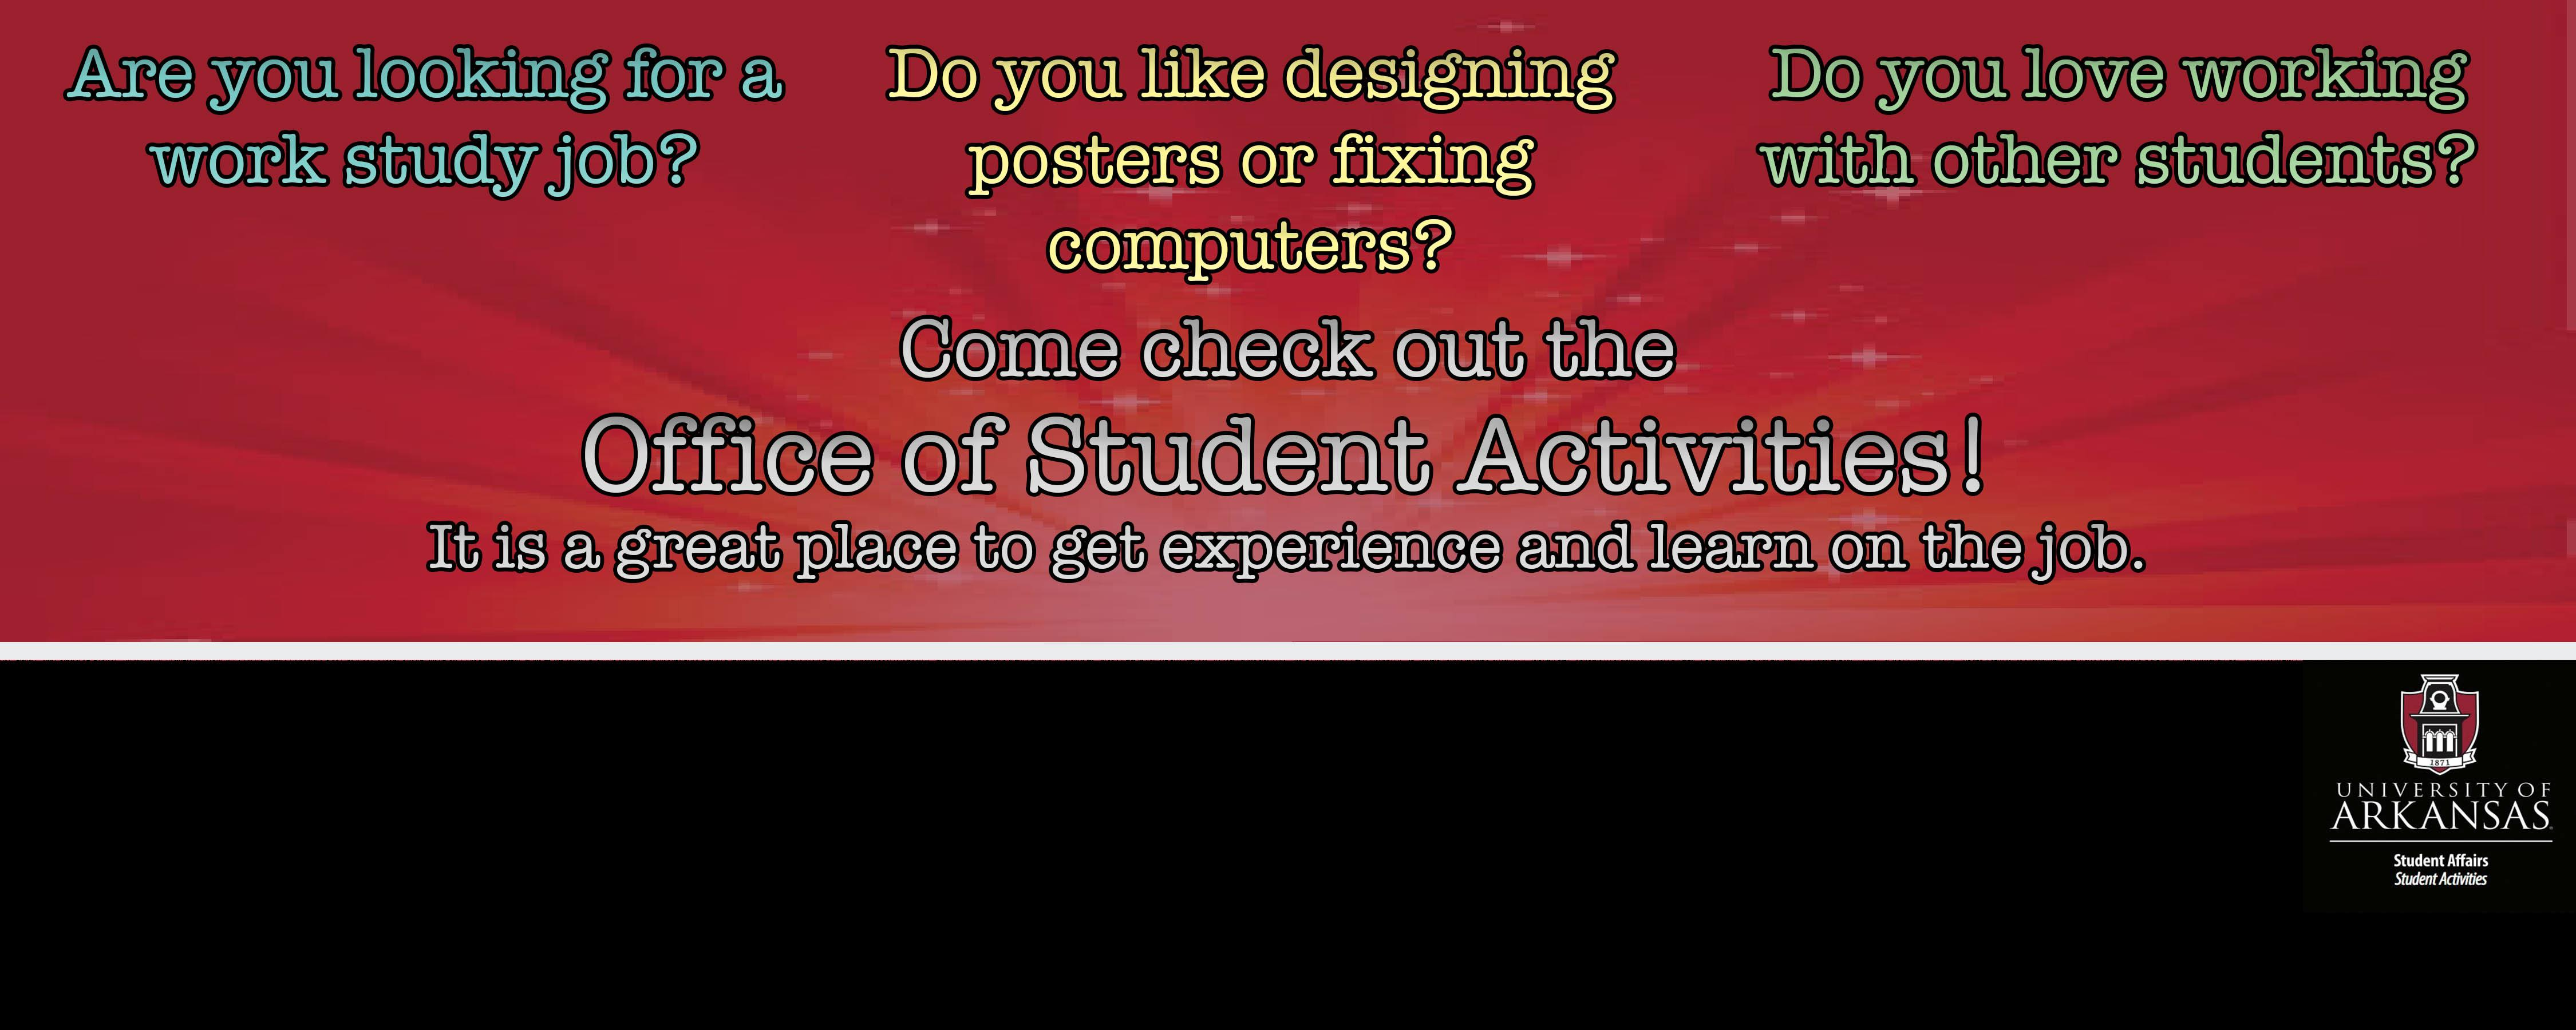 Office of Student Activities Work Study Applications